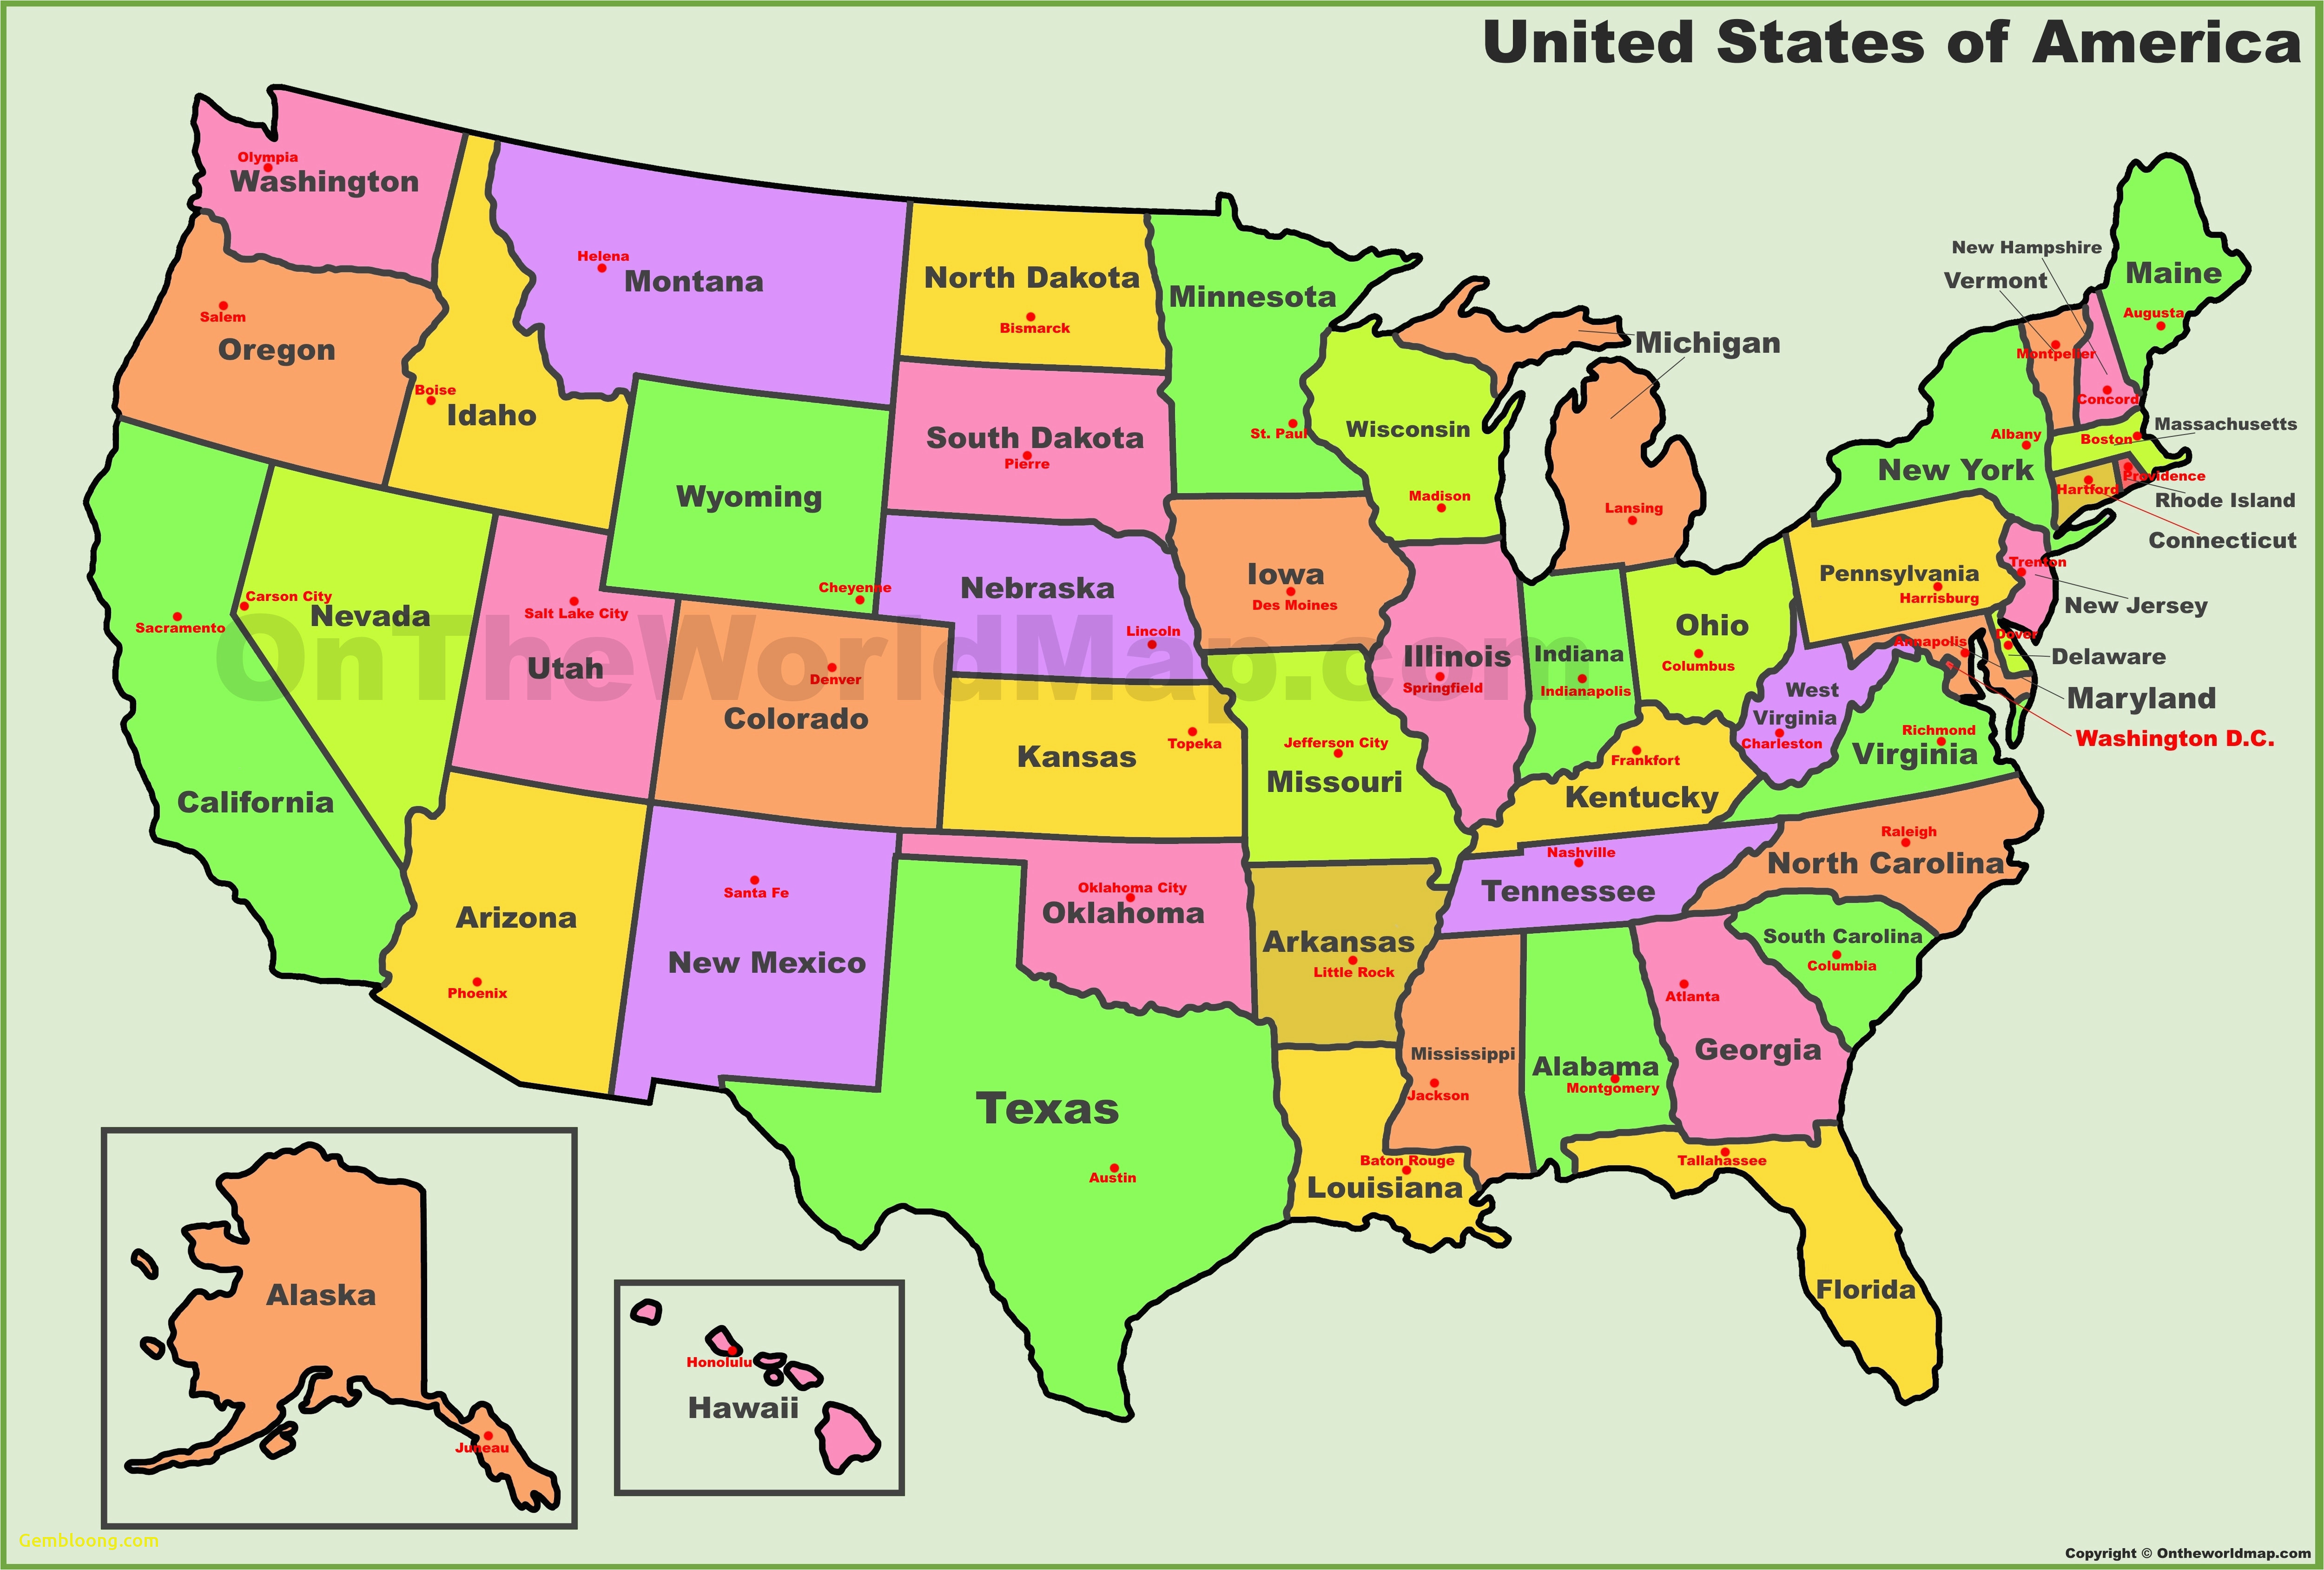 Map Of Usa Canada and Alaska Usa Map with States and Cities ... Map Of Alaska Cities on map of denver metro cities, map of mississippi river cities, map of greenland cities, map of guam cities, map of illinoise cities, map of mexican riviera cities, map of the carolinas cities, map of mid atlantic cities, map of dc cities, map of queens cities, map of louisville cities, map of georgia cities, map of ohio cities, map of eastern north carolina cities, map of yunnan cities, map of central mexico cities, map of manhattan cities, map of anchorage, map of wisconsin cities, map of gulf of mexico cities,